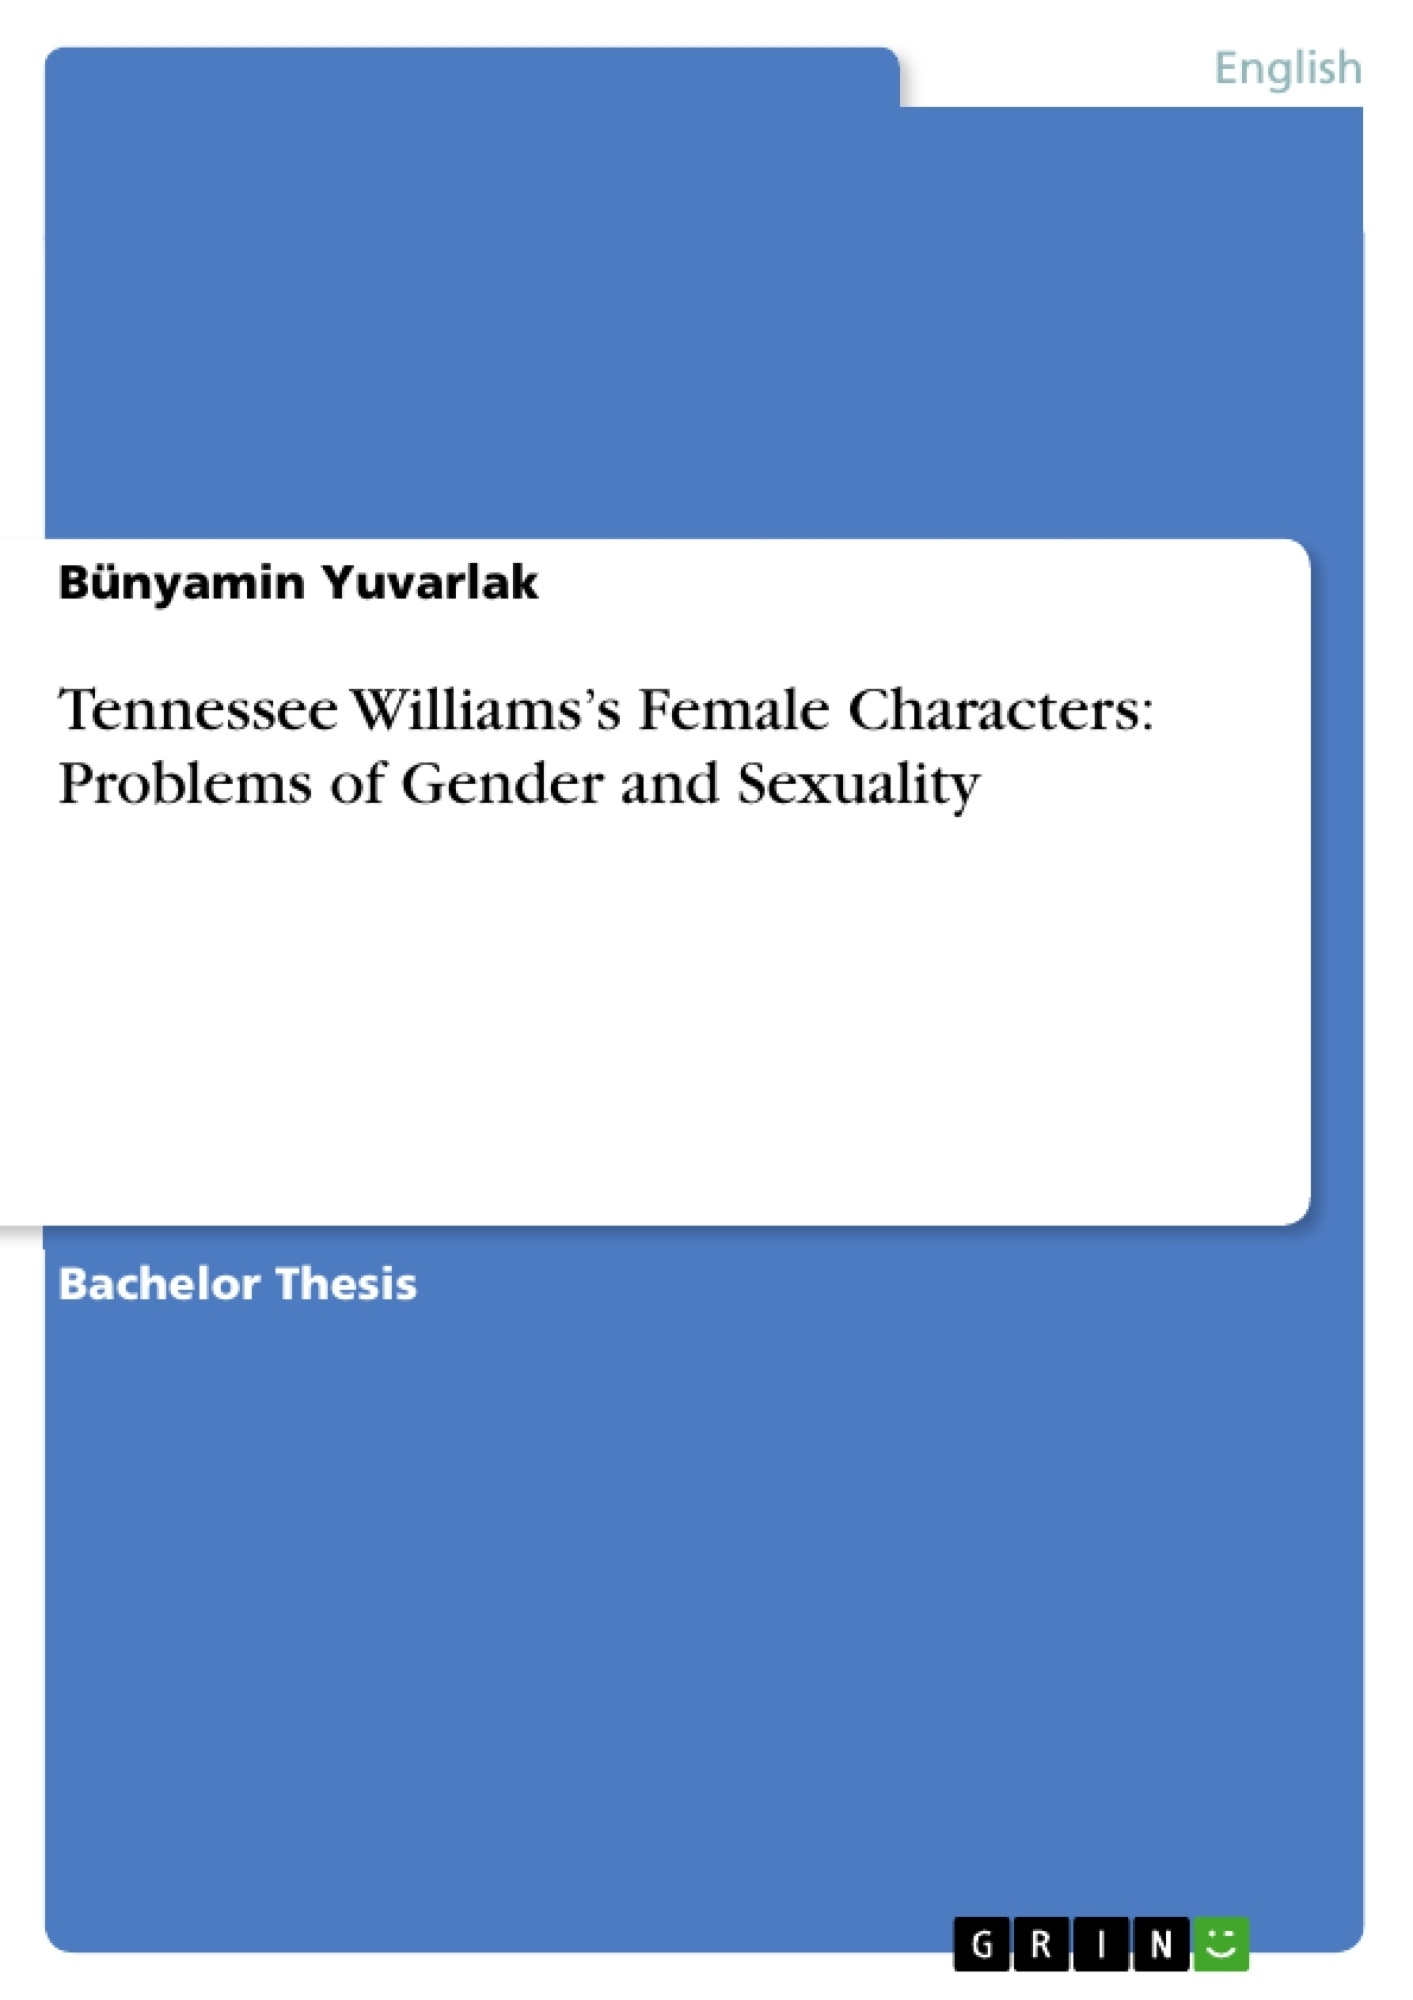 Title: Tennessee Williams's Female Characters: Problems of Gender and Sexuality